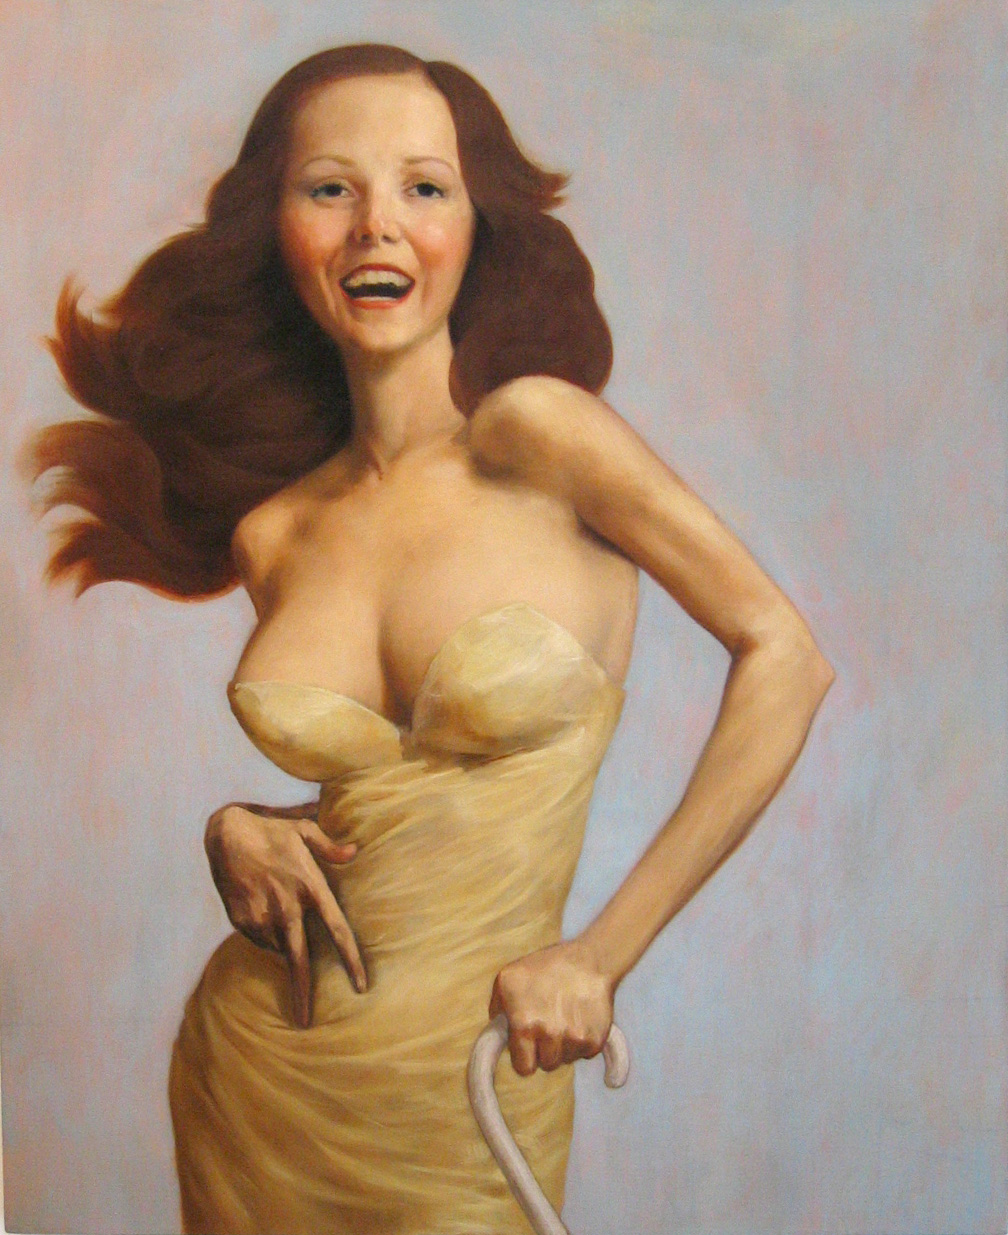 lil lolas http://whateverlolawants.tumblr.com/post/51909867/julianne-moore-as-the-cripple-by-john-currin